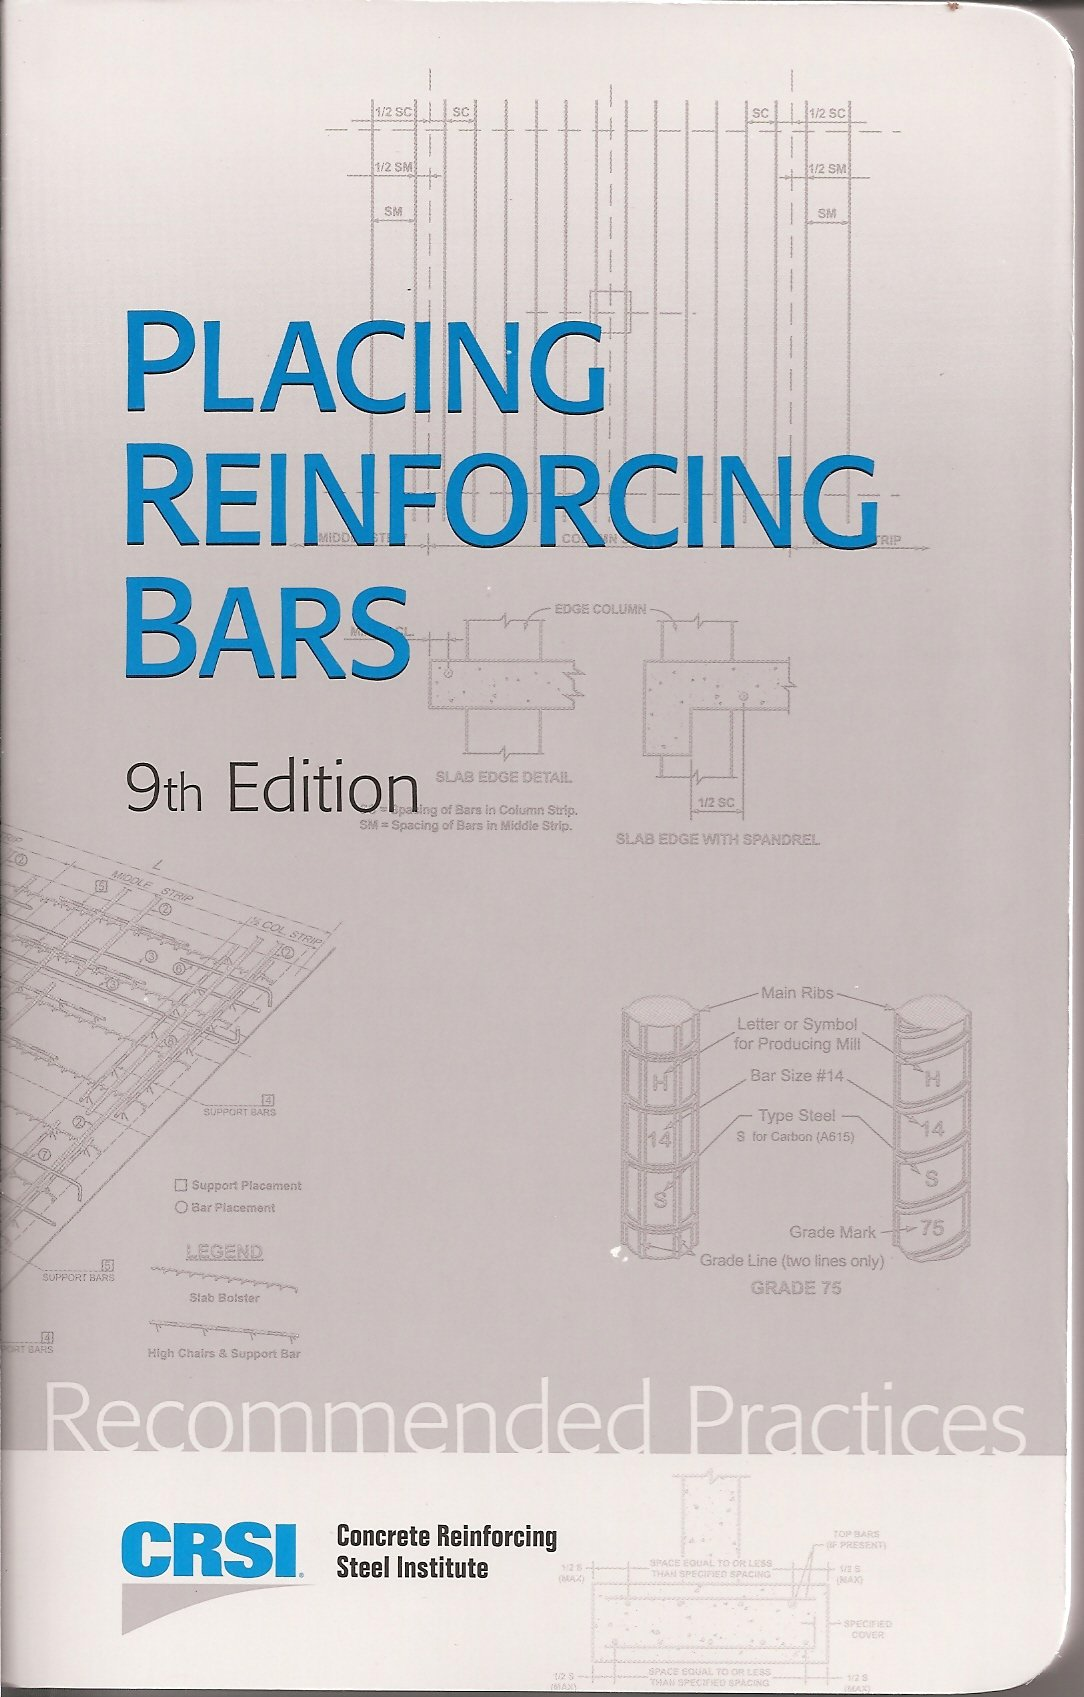 Placing reinforcing bars 9th edition crsi amazon books fandeluxe Choice Image